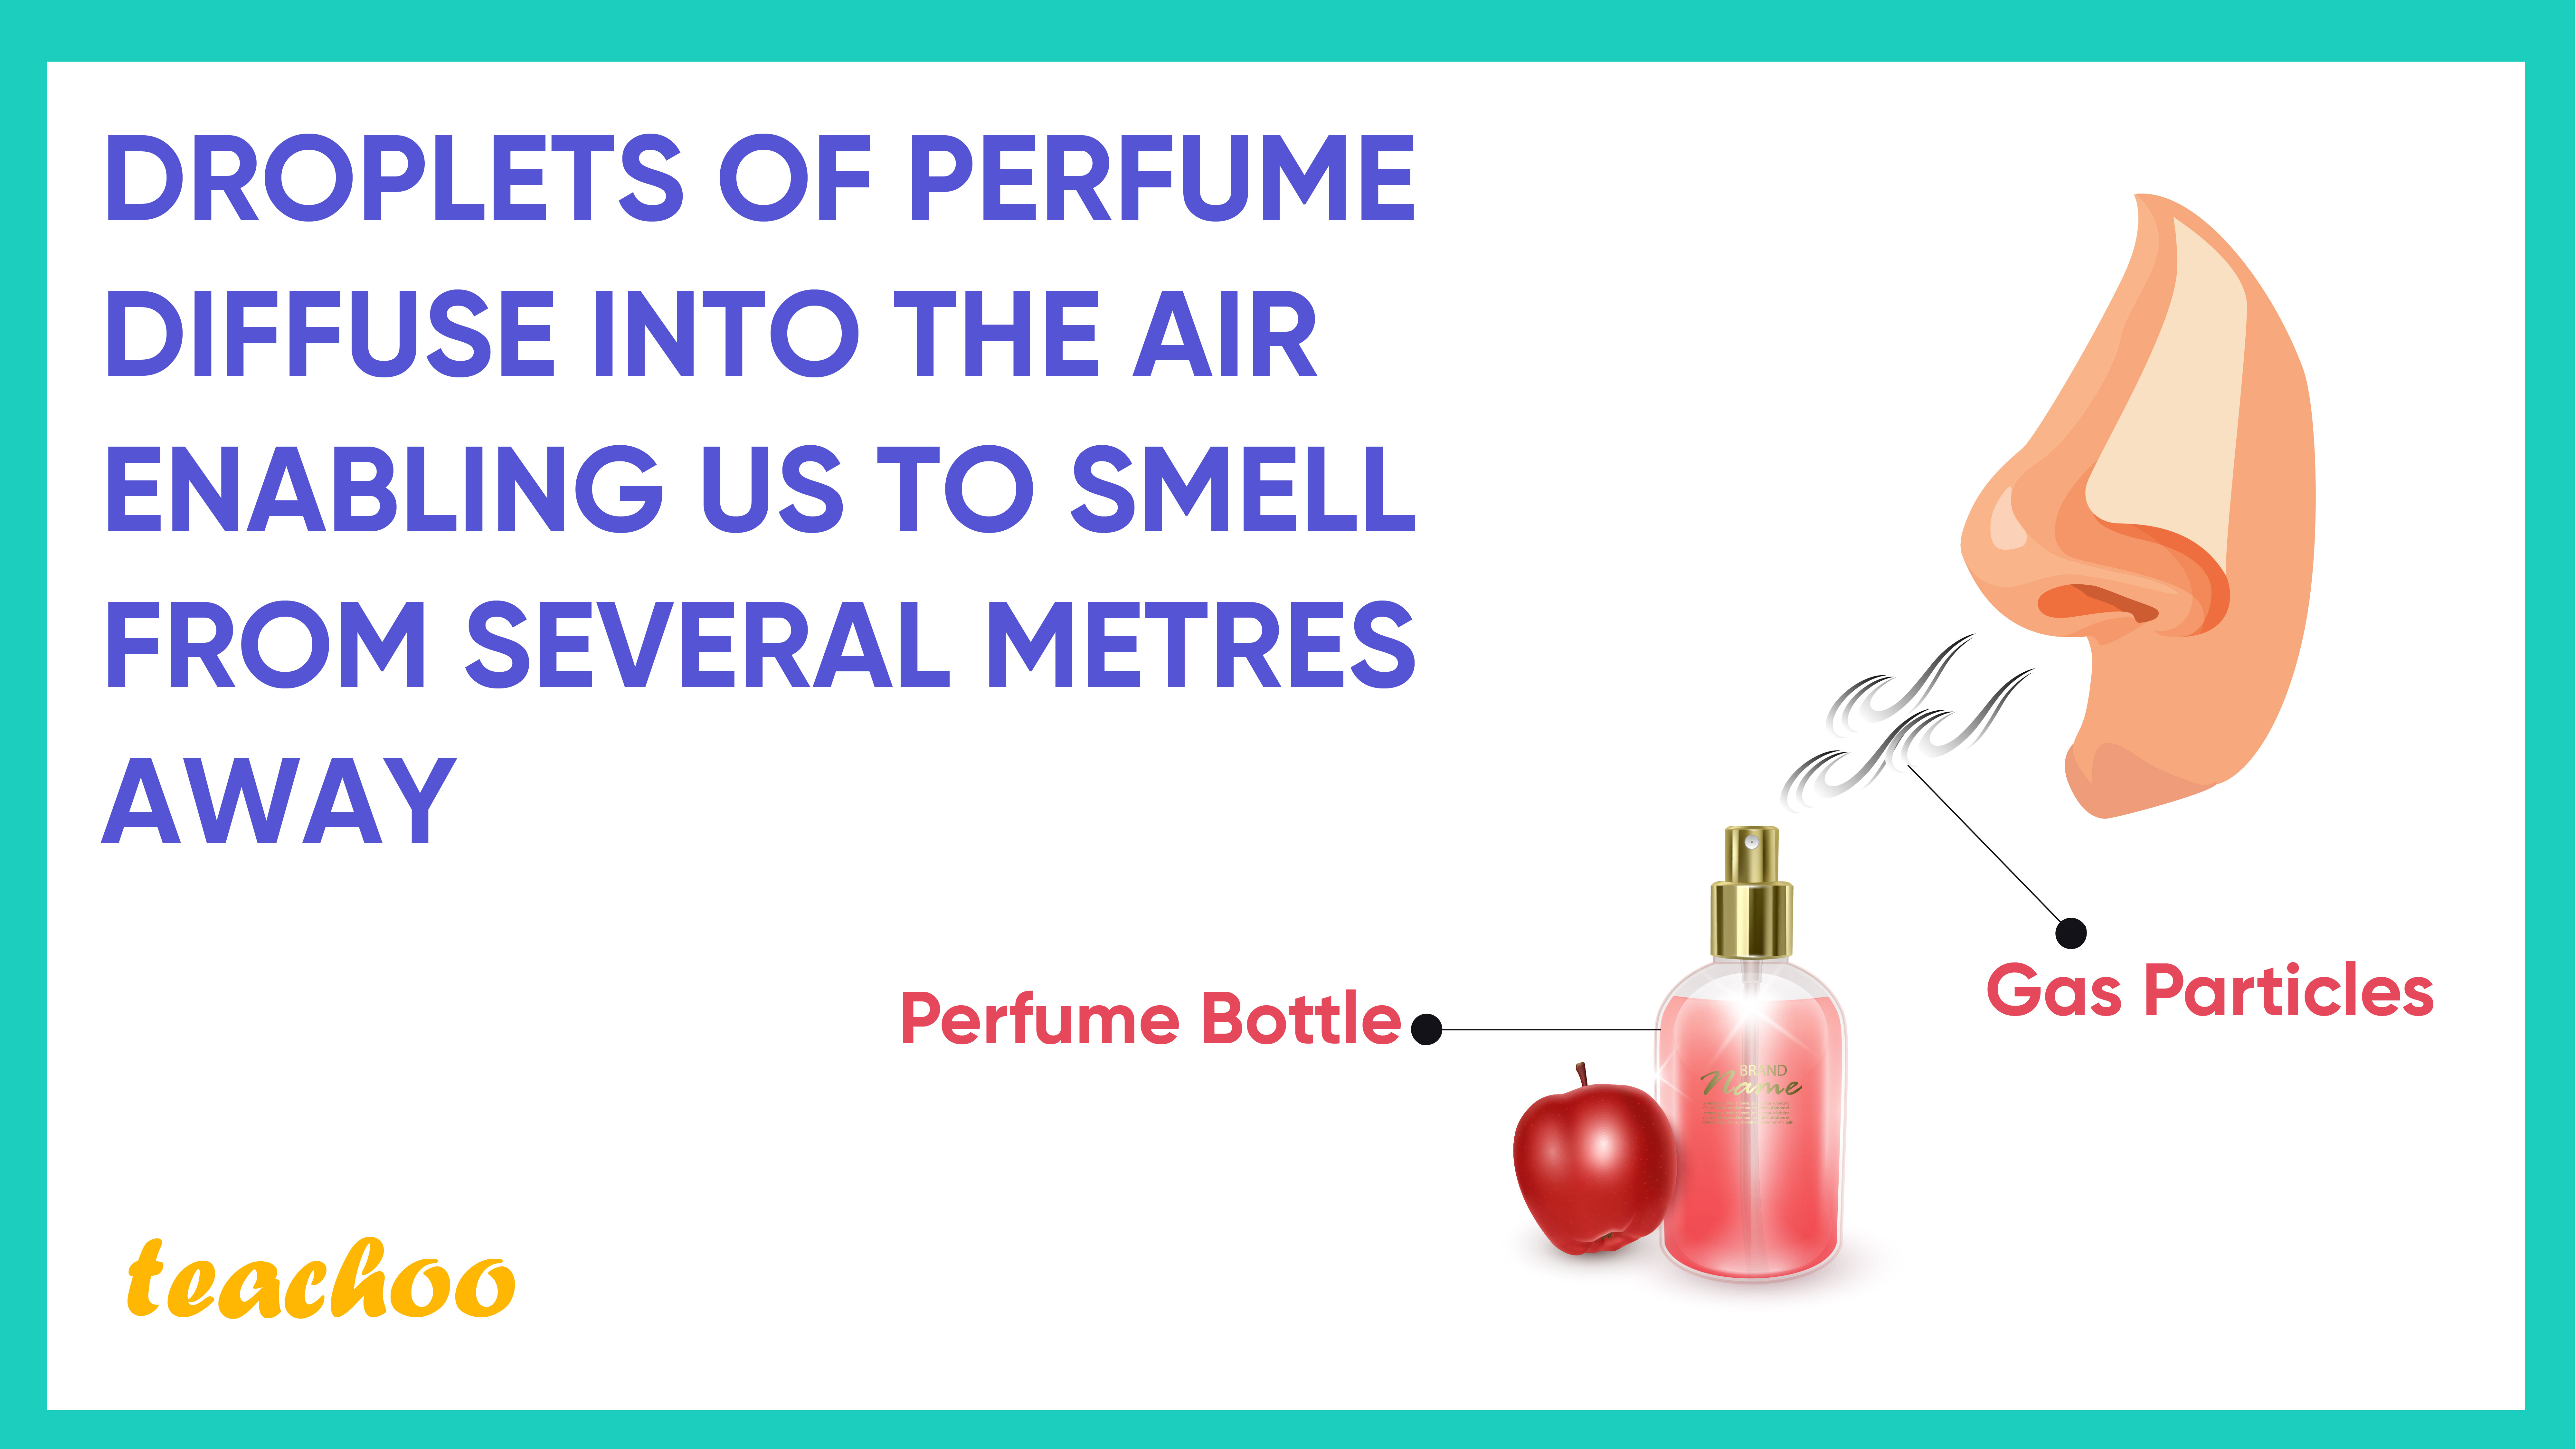 Droplets of perfume diffuse into the air enabling us to smell from several metres away-Teachoo.jpg